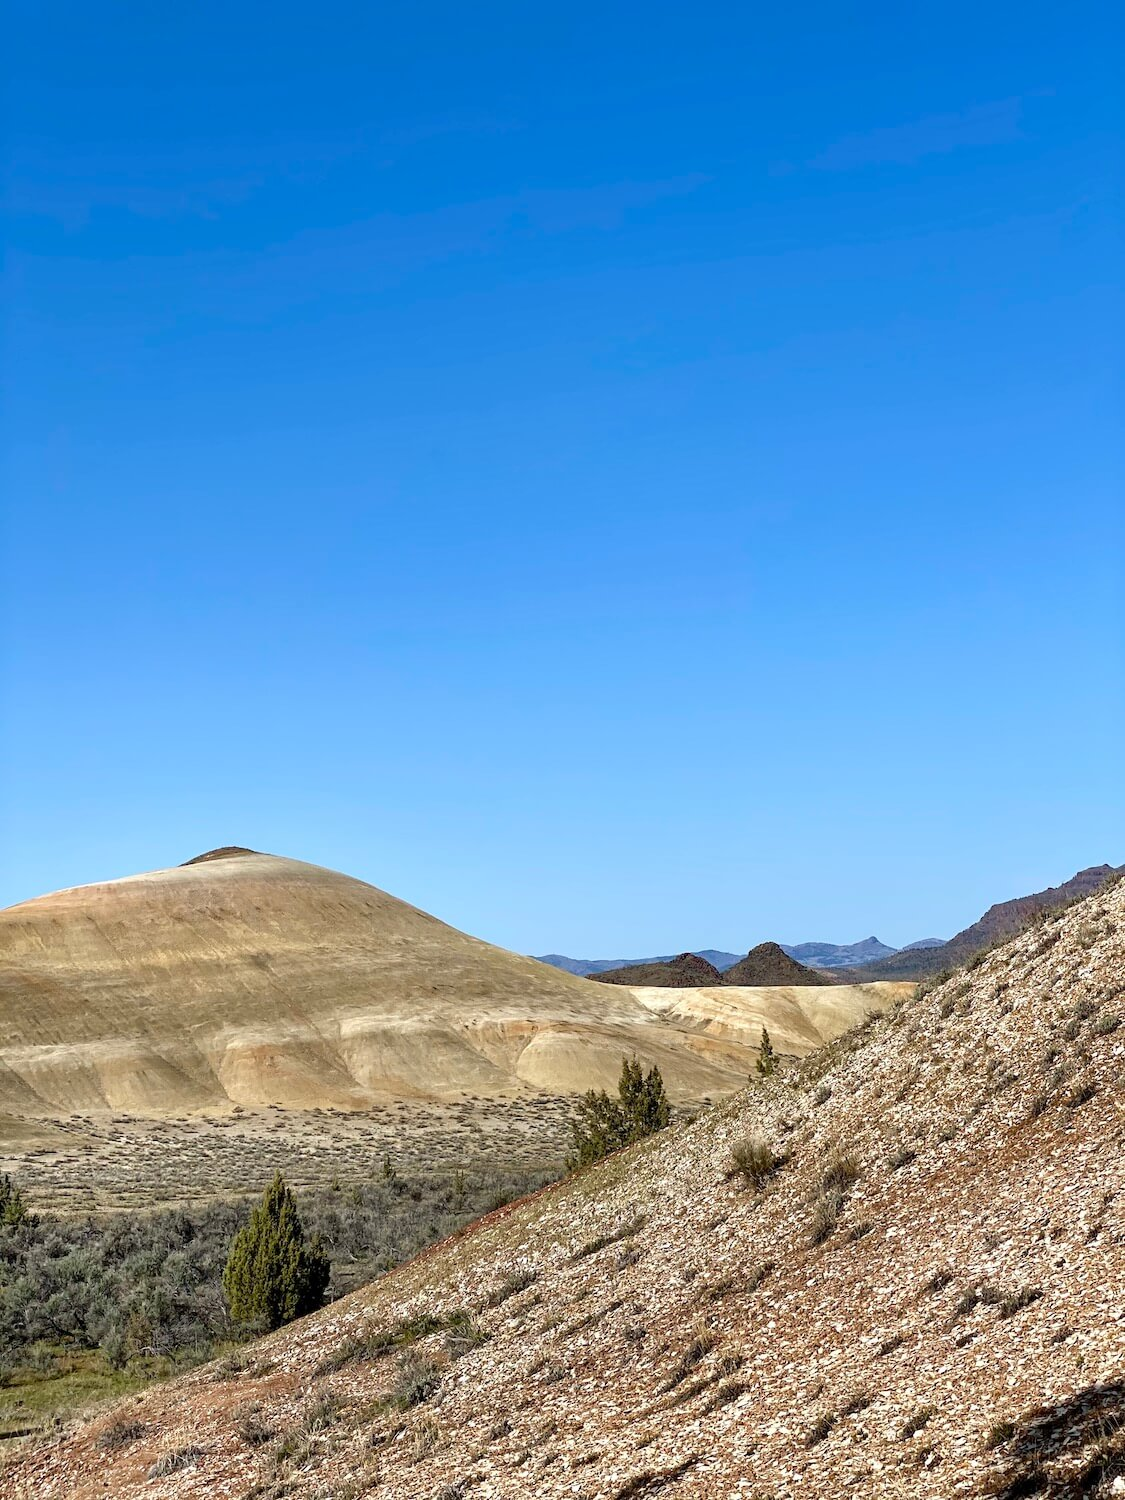 A hill covered with shale pieces has a few small sage plants trying to grow amongst the arid climate at the Painted Hills in Oregon.  A rolling hill that mixes greens and yellows rises up in the distance under a blue sky.